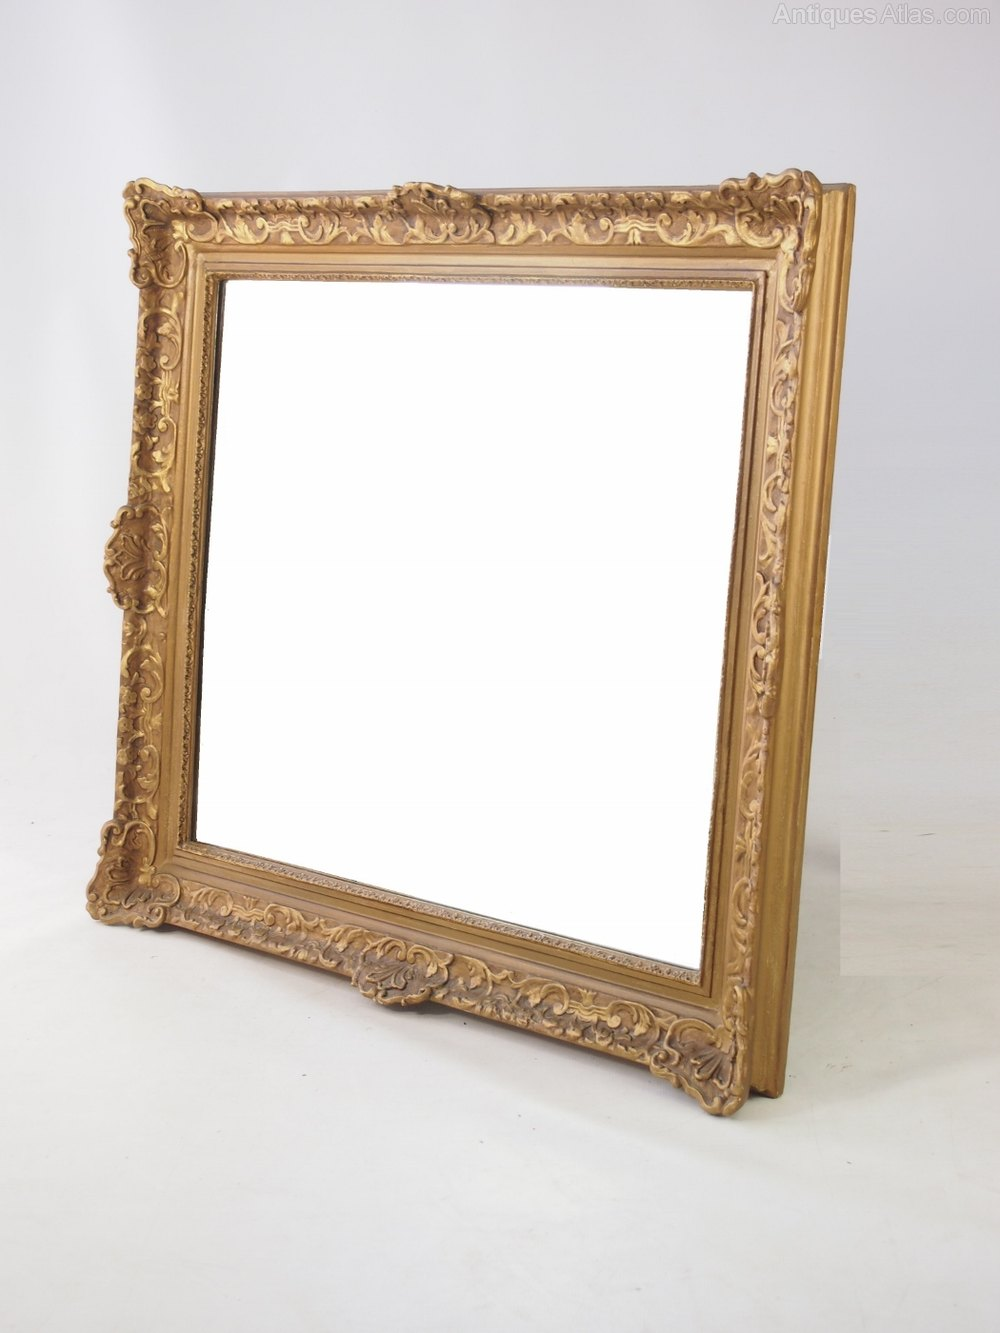 Antiques atlas large gilt framed wall mirror for Large framed mirrors for walls